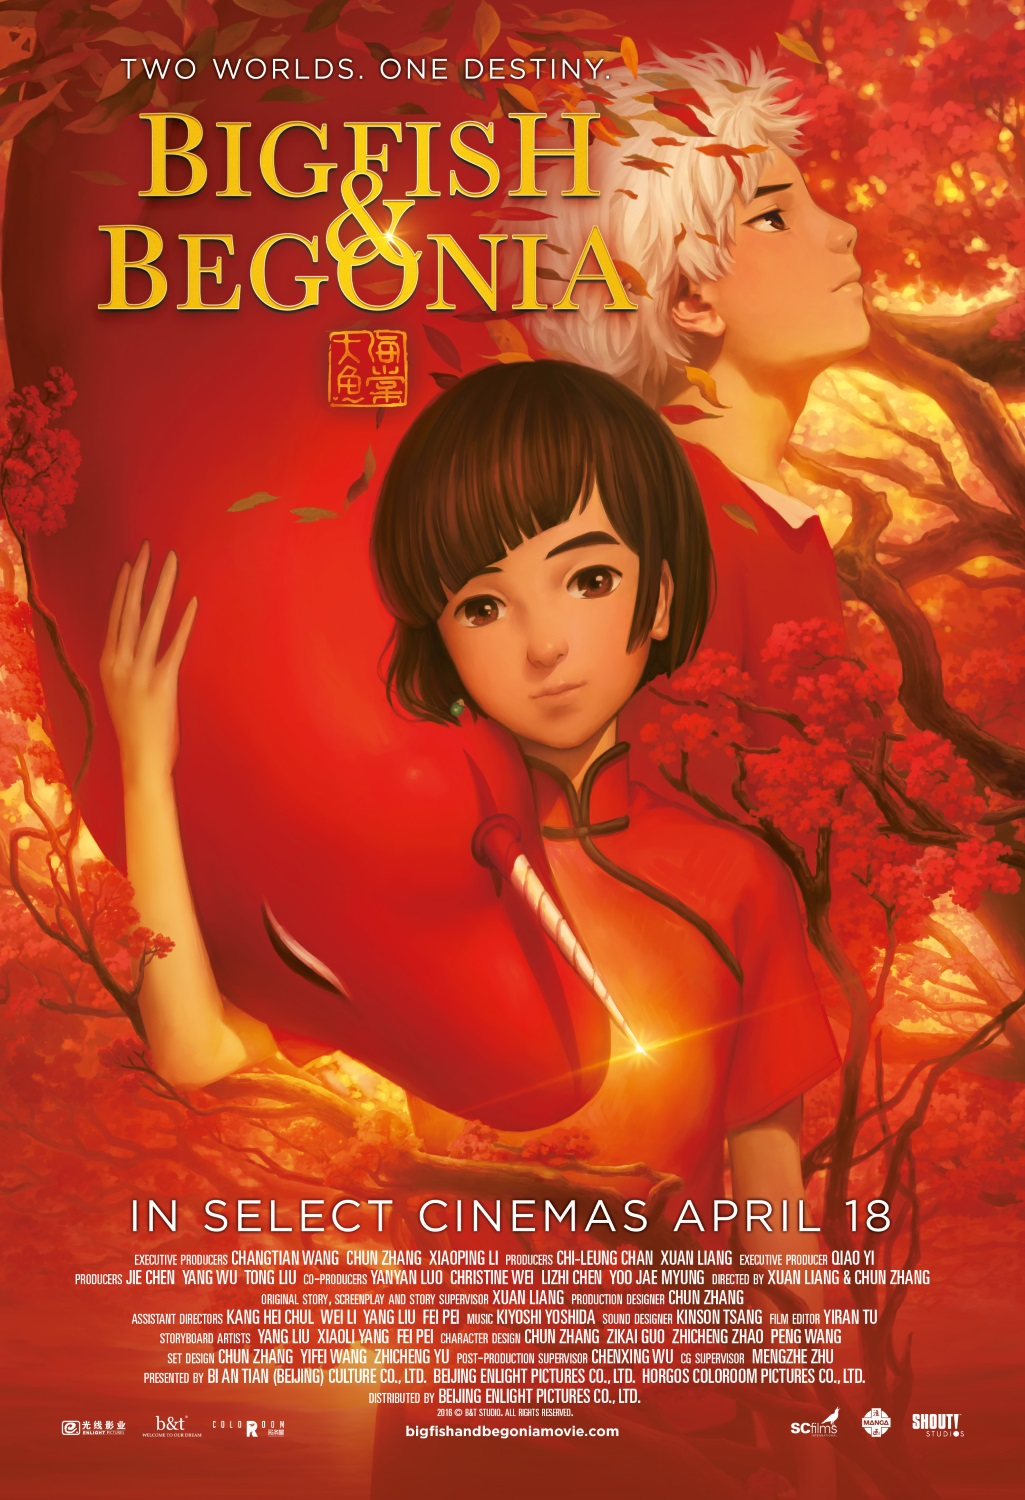 Big Fish & Begonia (2016)* - Whats After The Credits?   The